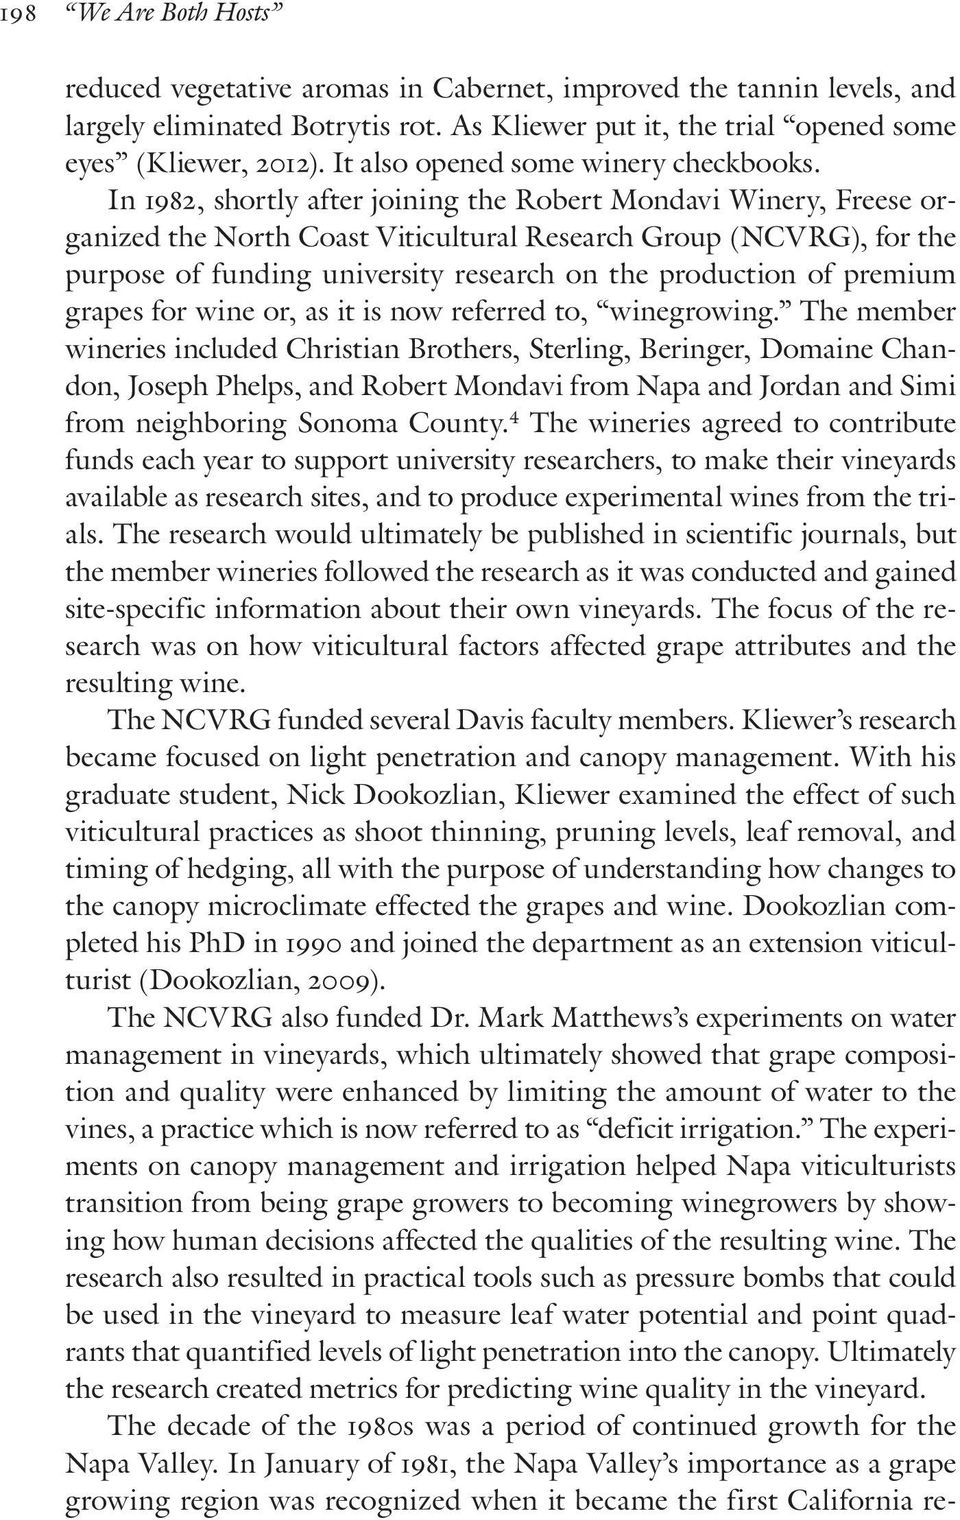 In 1982, shortly after joining the Robert Mondavi Winery, Freese organized the North Coast Viticultural Research Group (NCVRG), for the purpose of funding university research on the production of